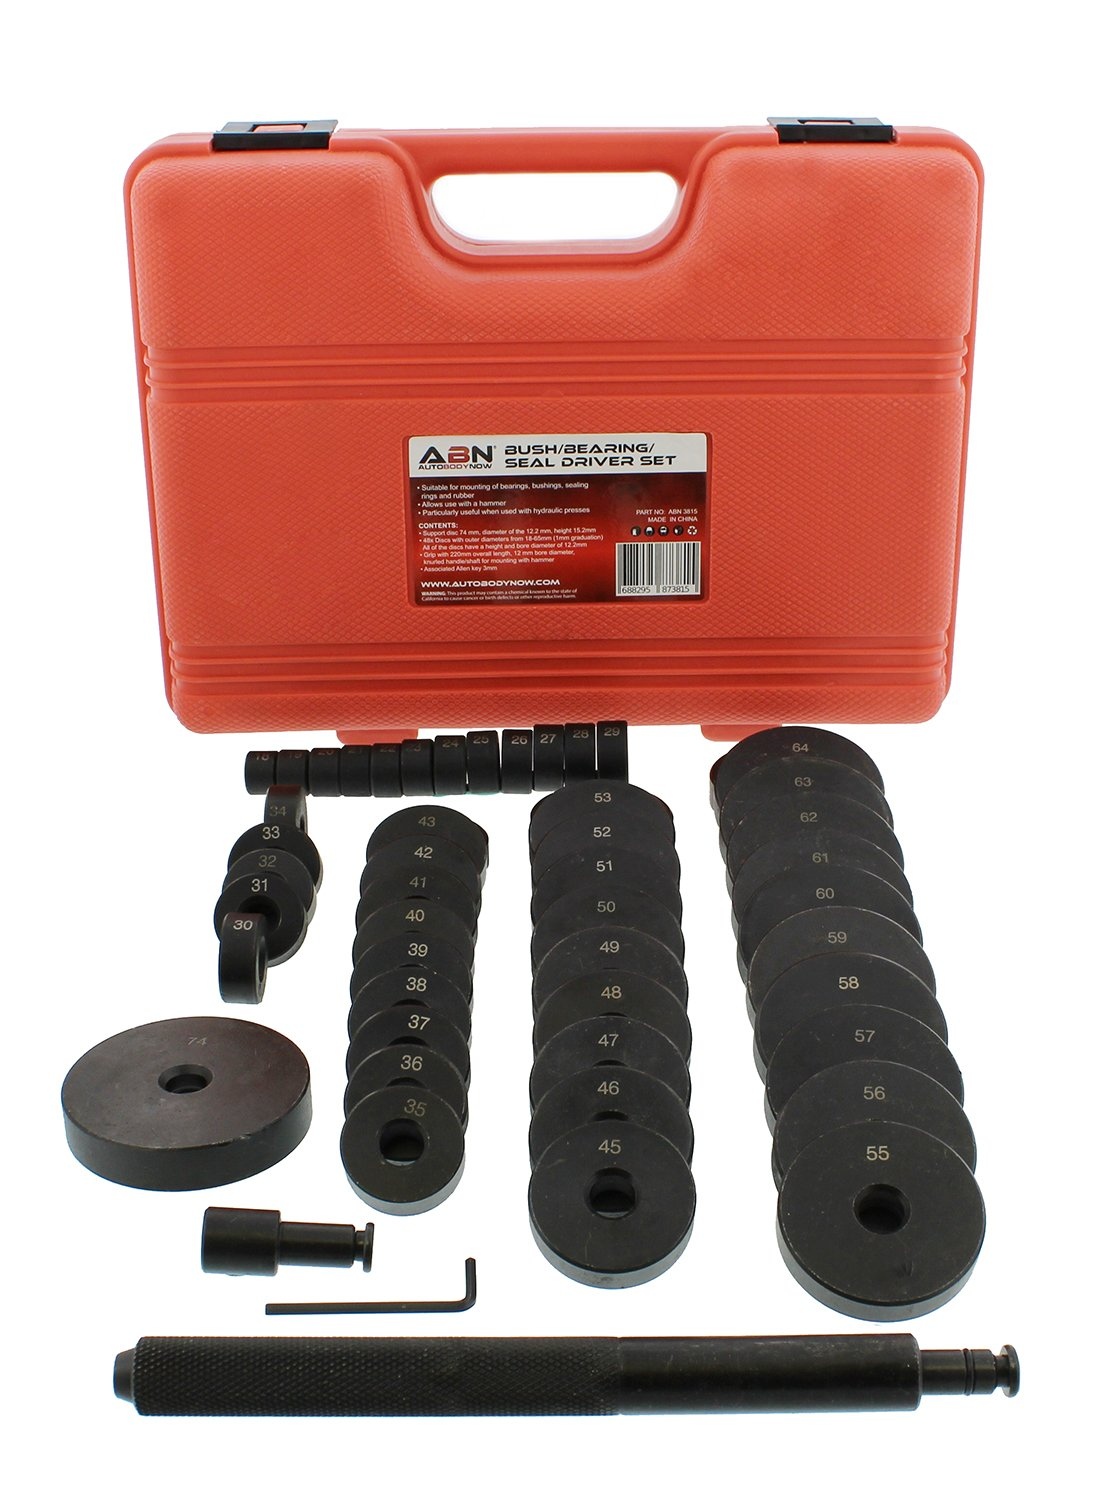 ABN Bush, Bearing, Seal Driver 50-Piece Set with Carrying Case – 18-65mm & 74mm Metric Discs, Shaft, Allen Key, Screw by ABN (Image #4)